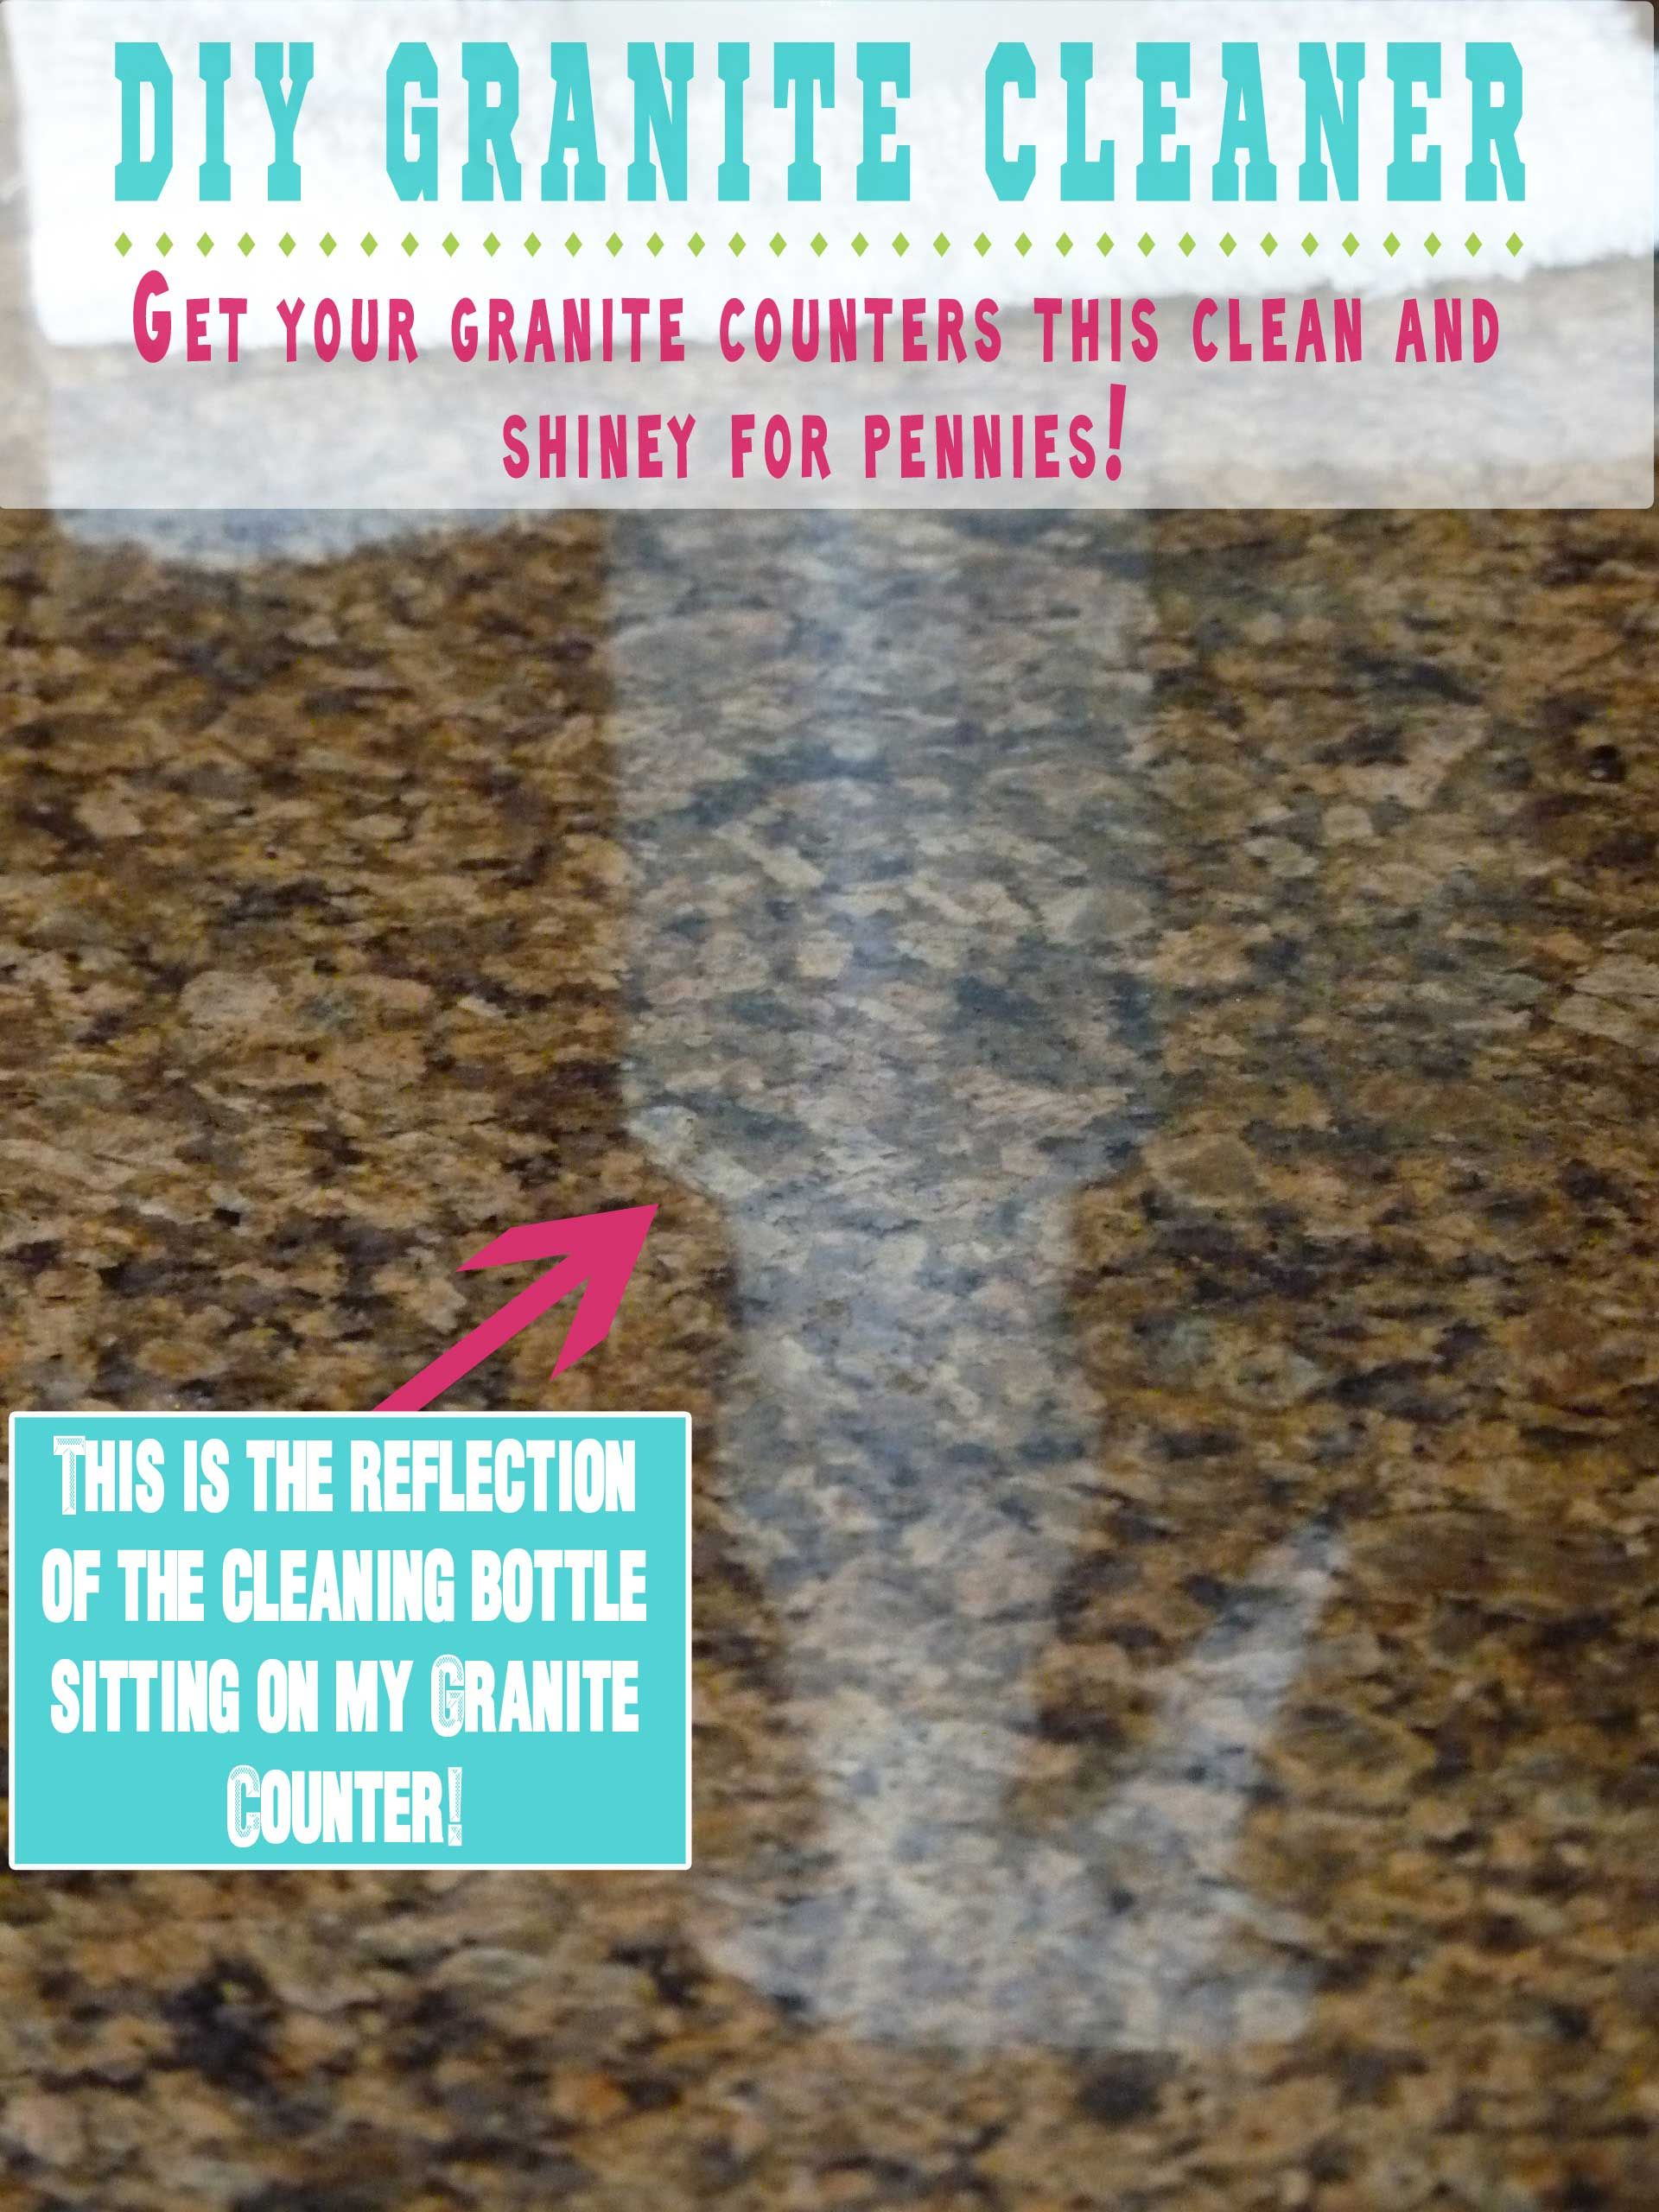 Diy Granite Cleaner 1 4 C Rubbing Alcohol 3 Drops Dishwashing Liquid 2 Cups Water 5 6 Essential Oils Place Them In A Cleaning Bottle